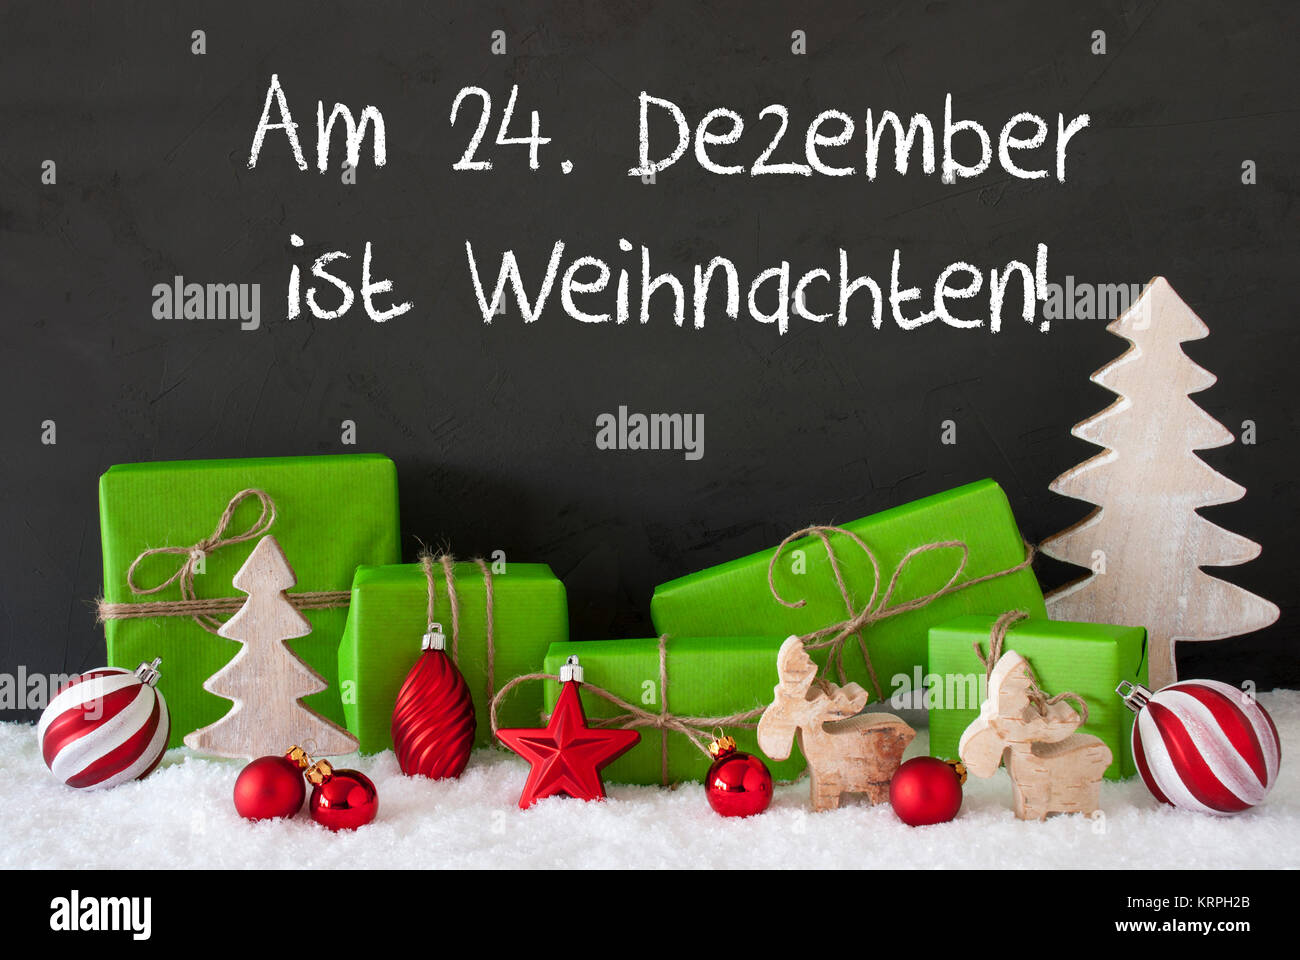 German Text Am 24. Dezember Ist Weihnachten Means December 24th Is Christmas Eve. Green Gifts With Decoration Like - Stock Image